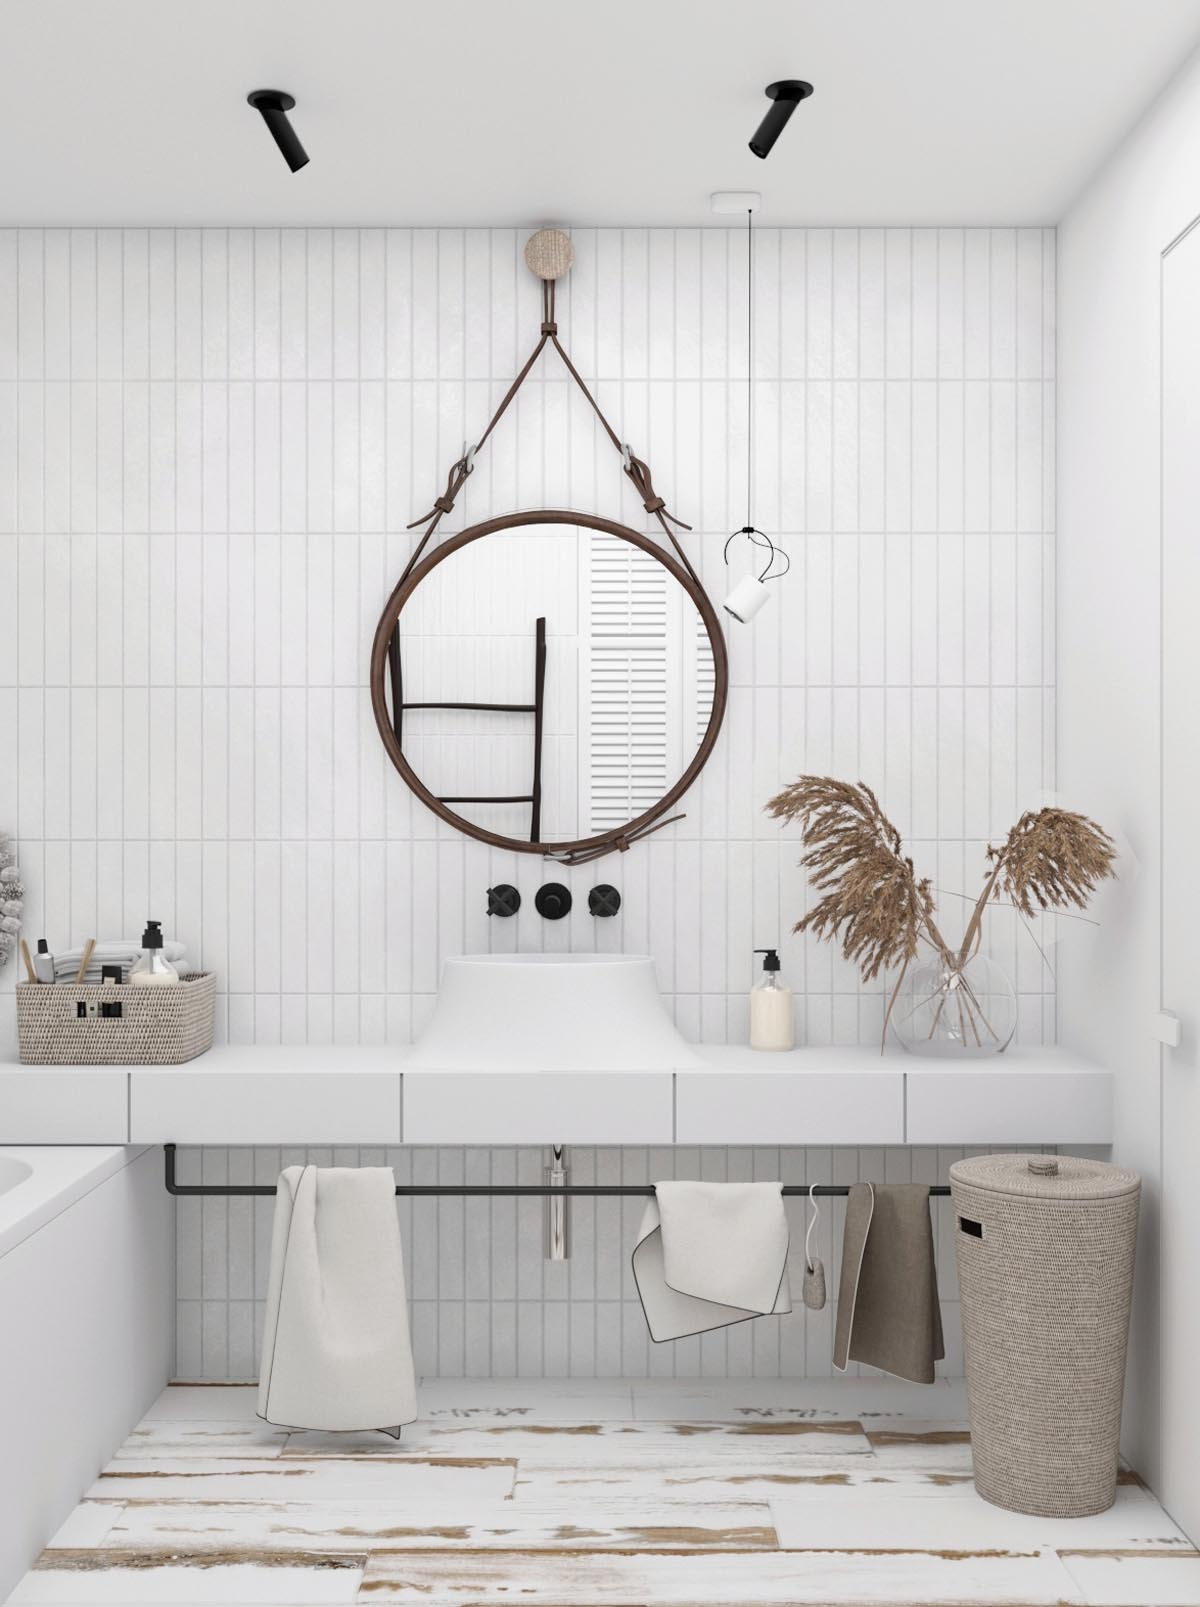 All-White Interior Design: Tips With Example Images To Help You Get It Right images 35